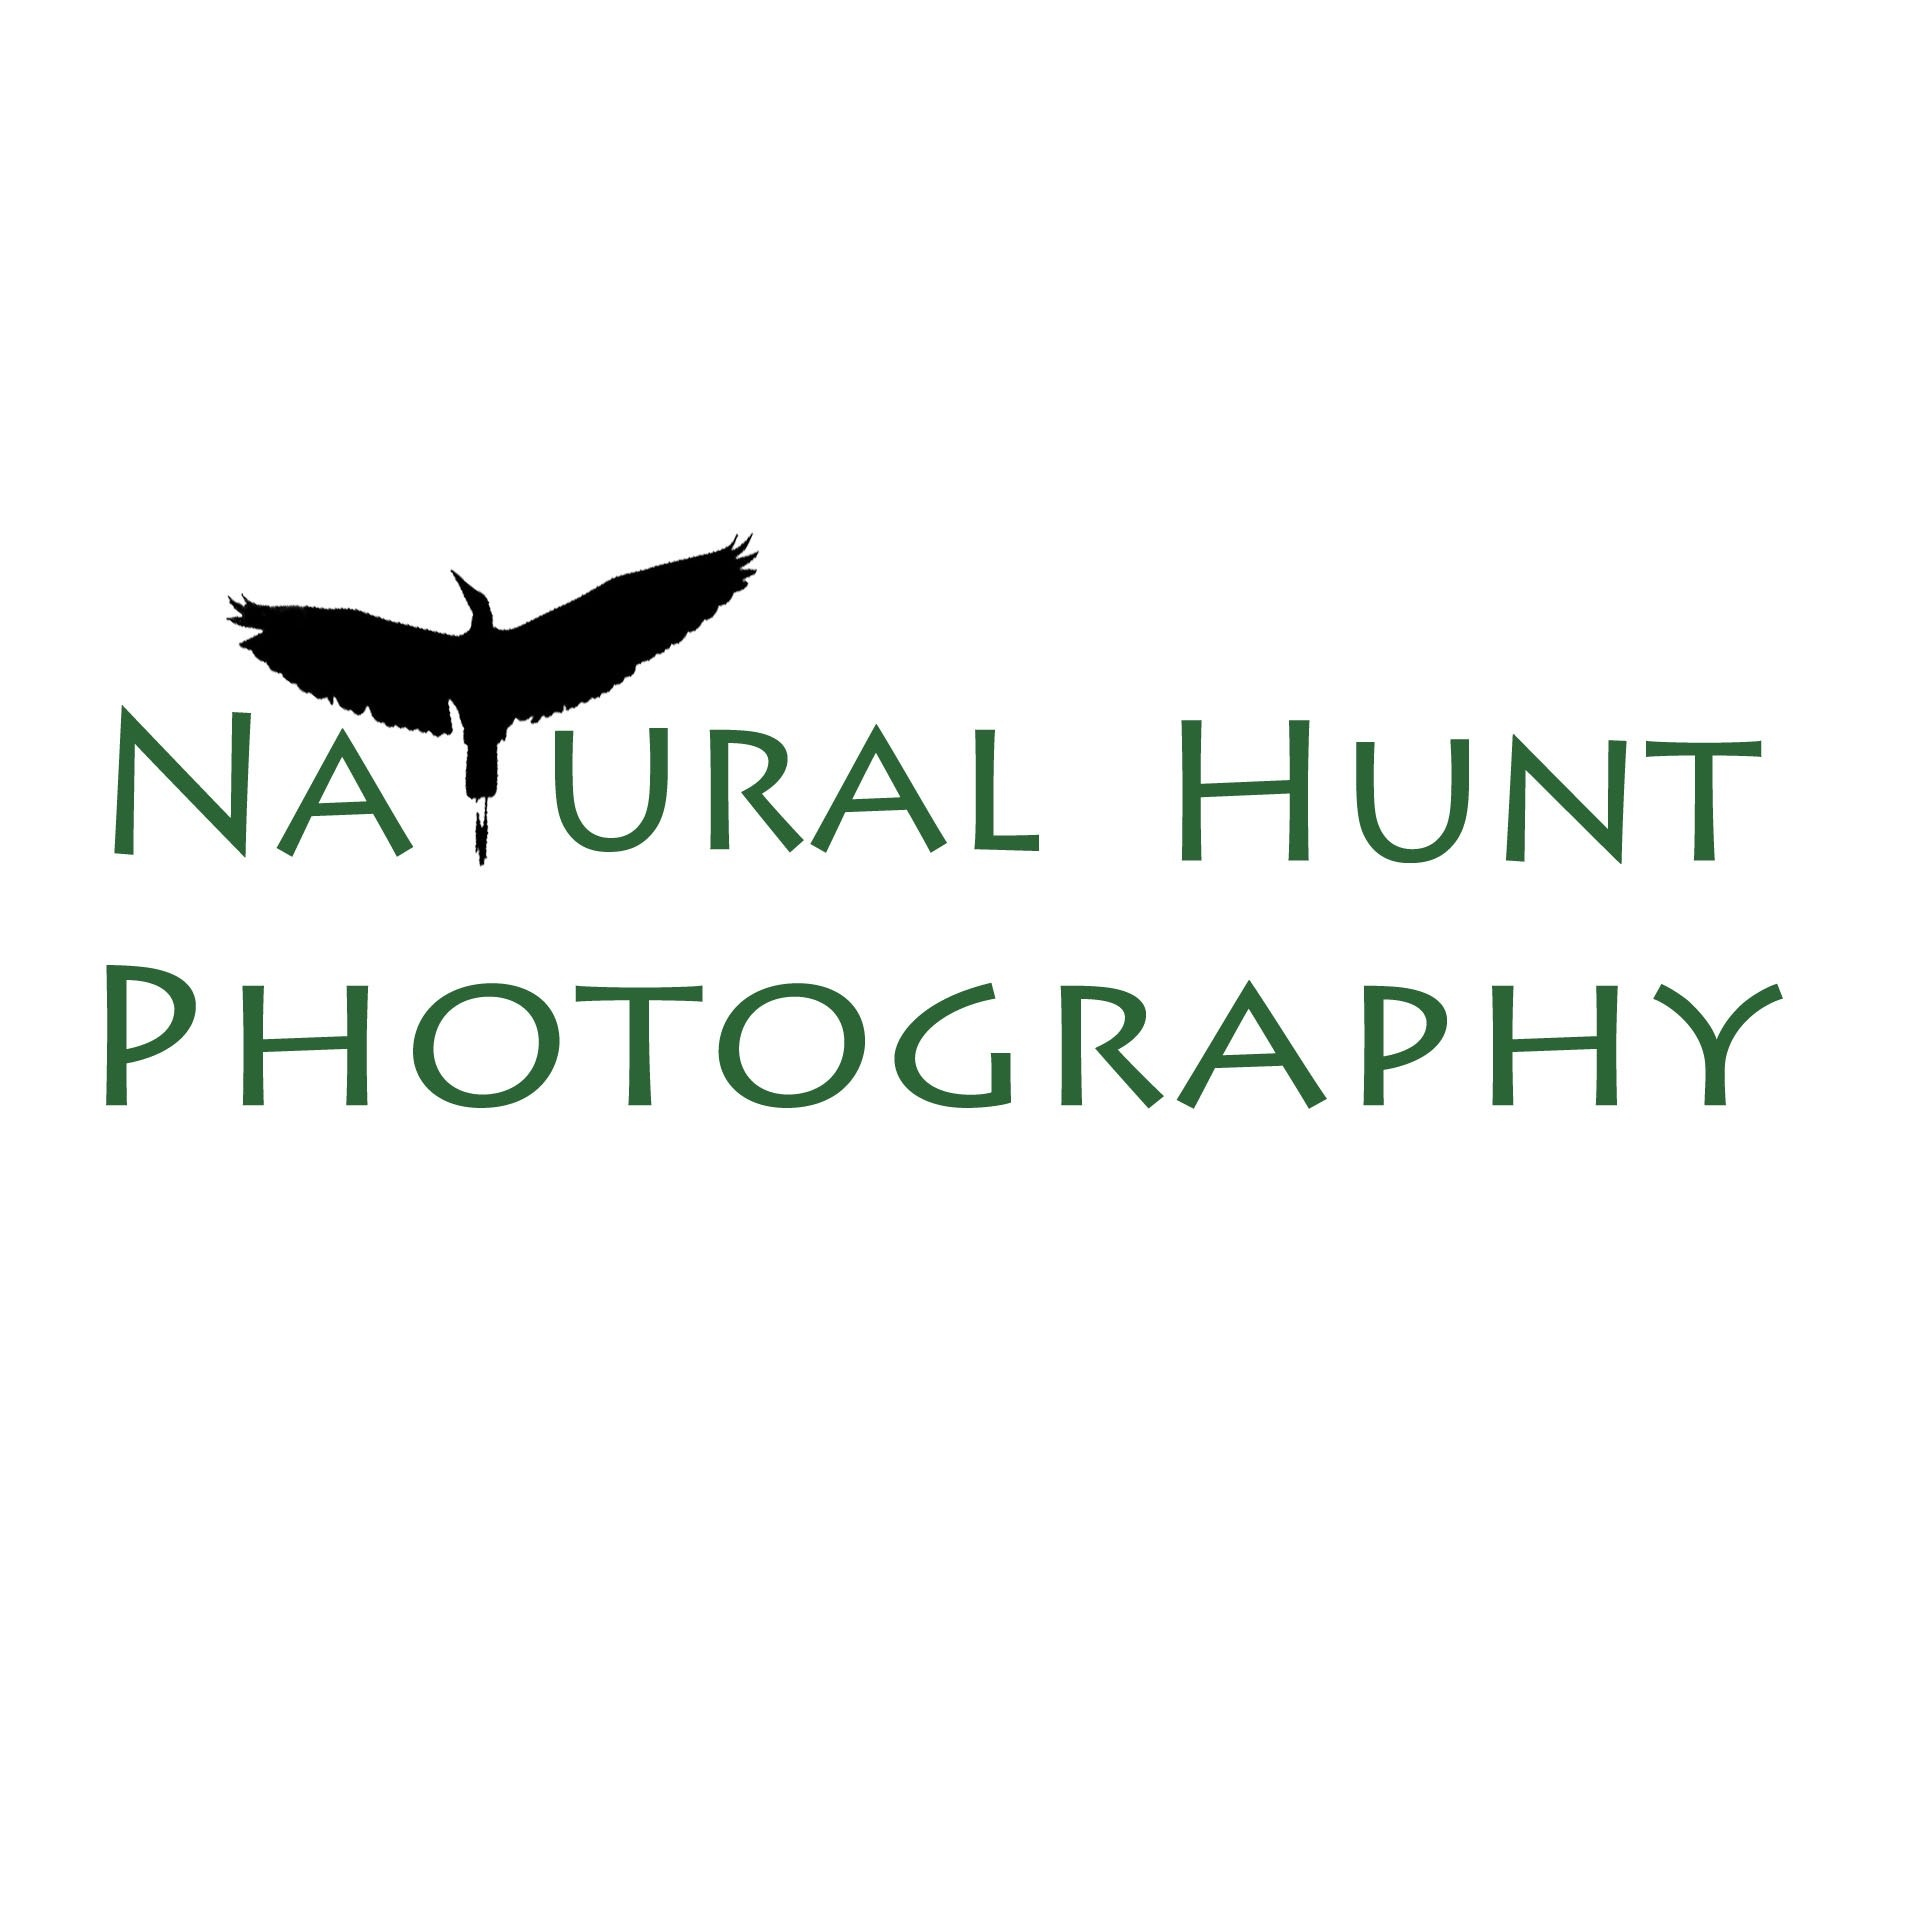 Natural Hunt Photography